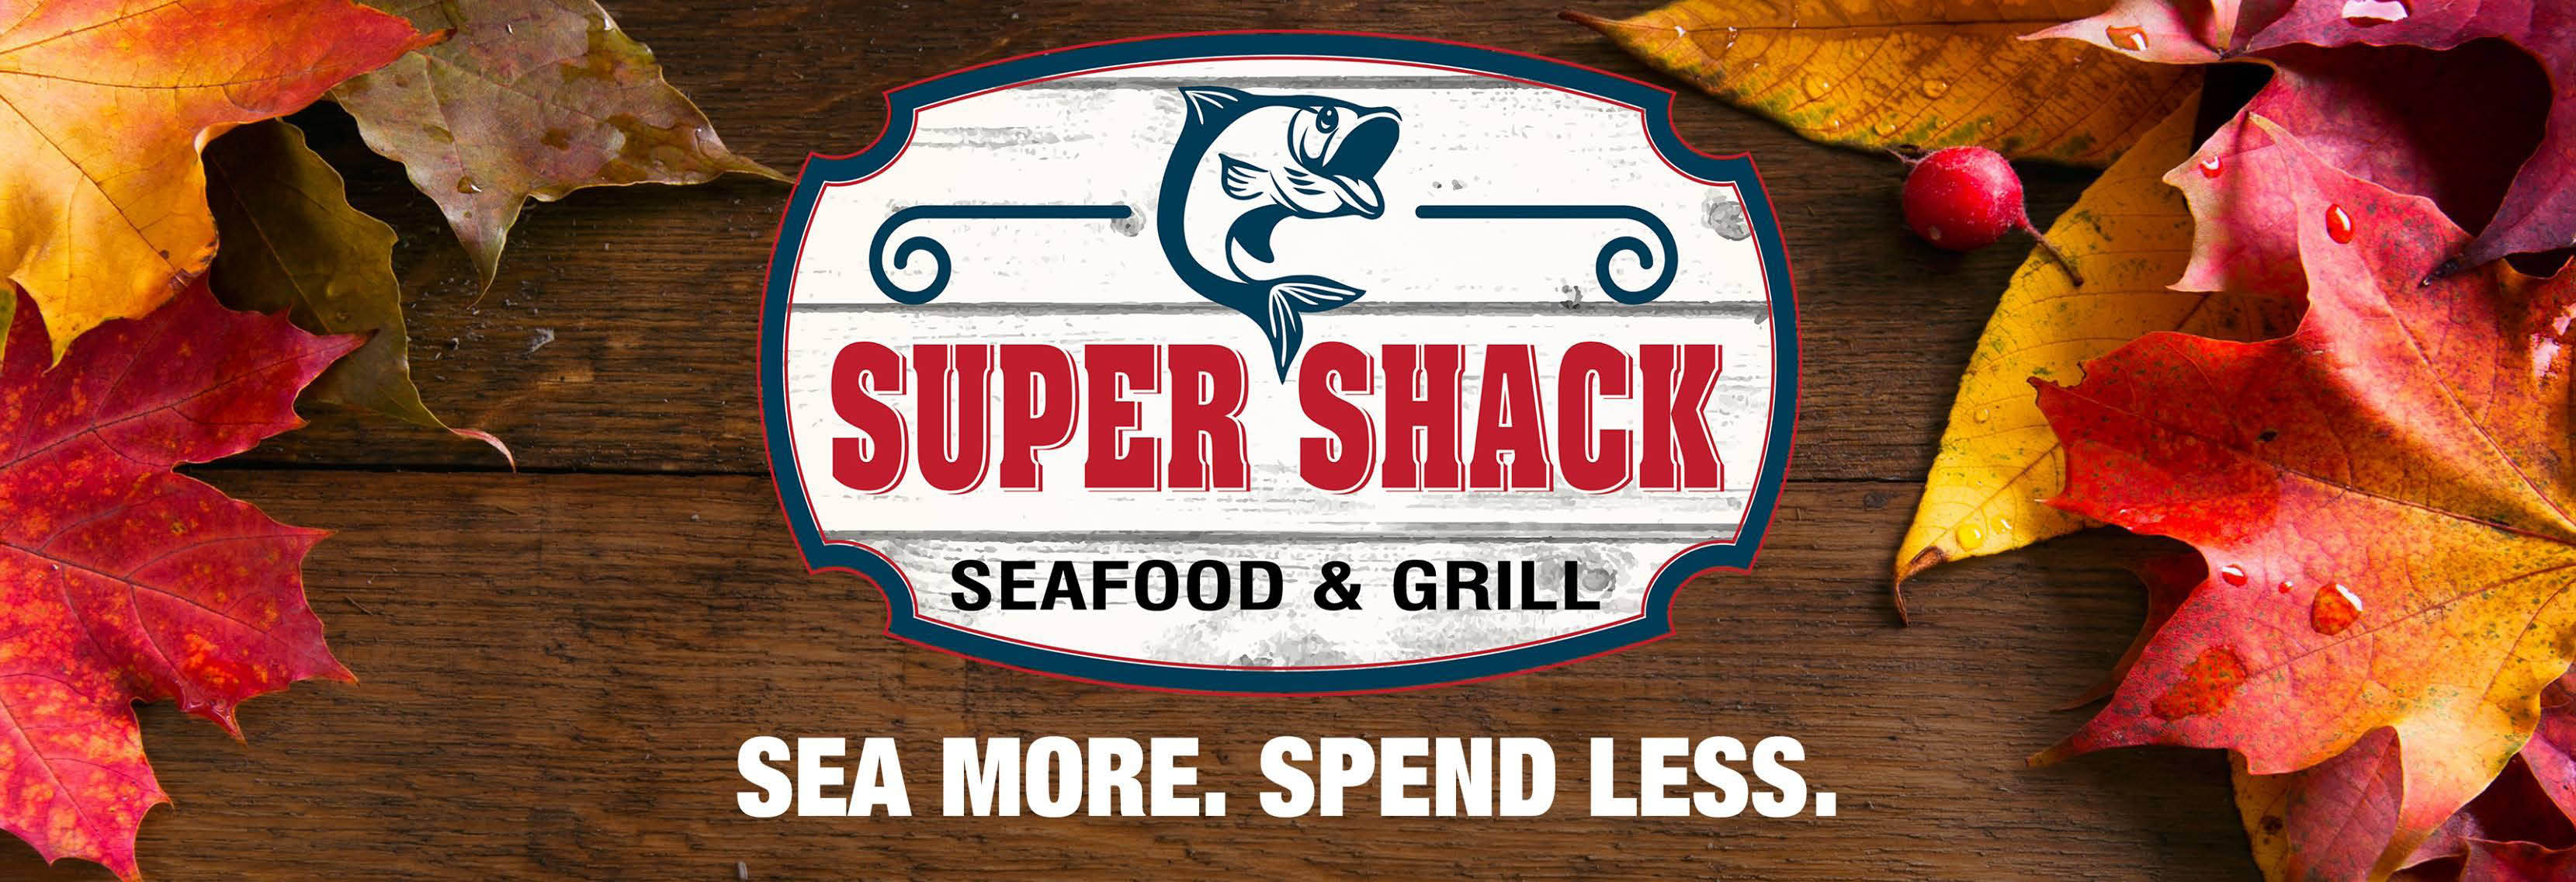 super-shack-seafood-grill-mckinney-tx